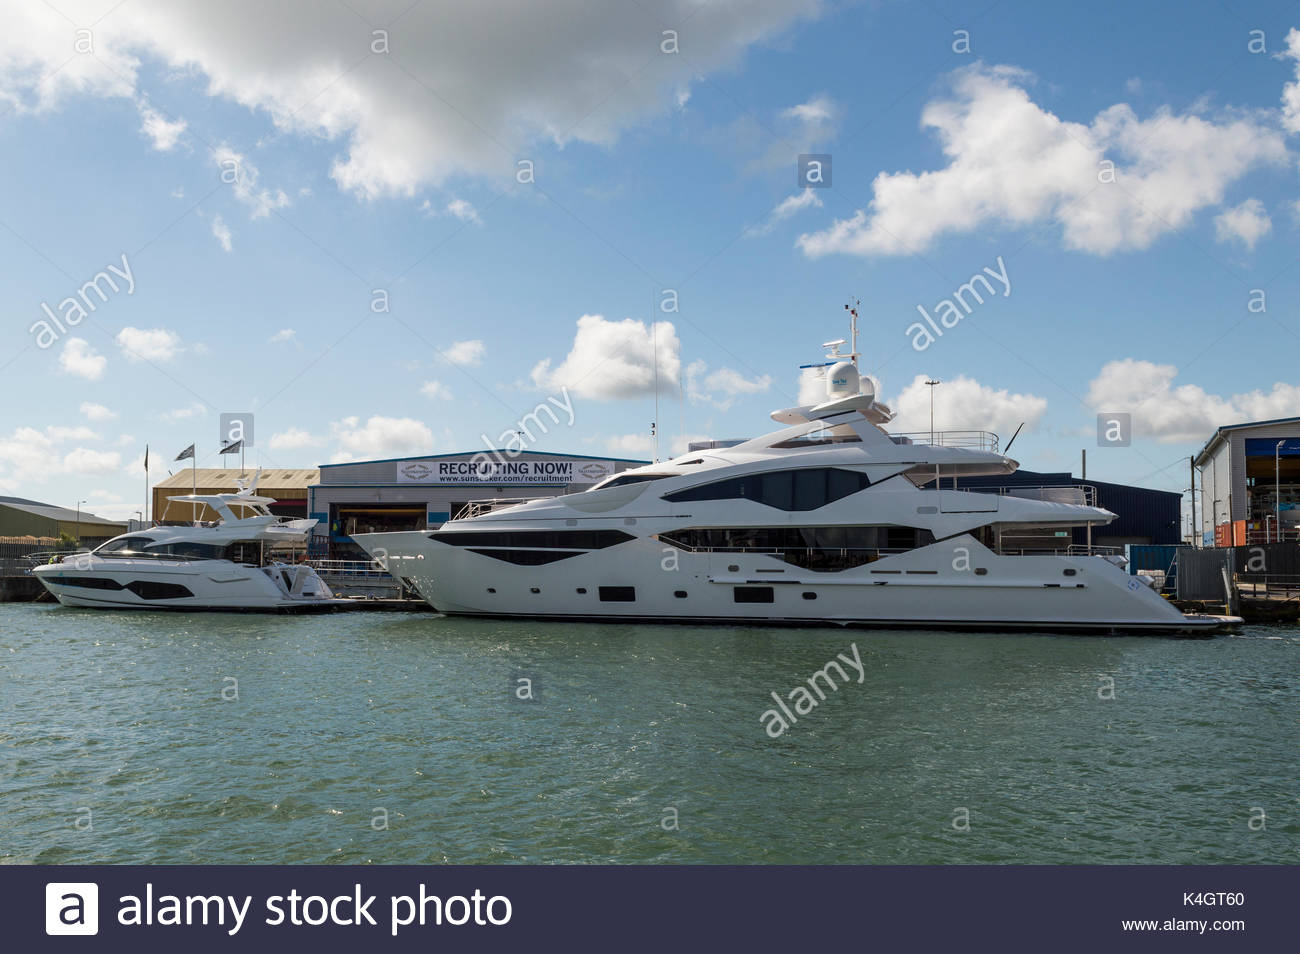 Sunseeker factory with Recruiting Now! sign, Poole, Dorset, England, UK Stock Photo